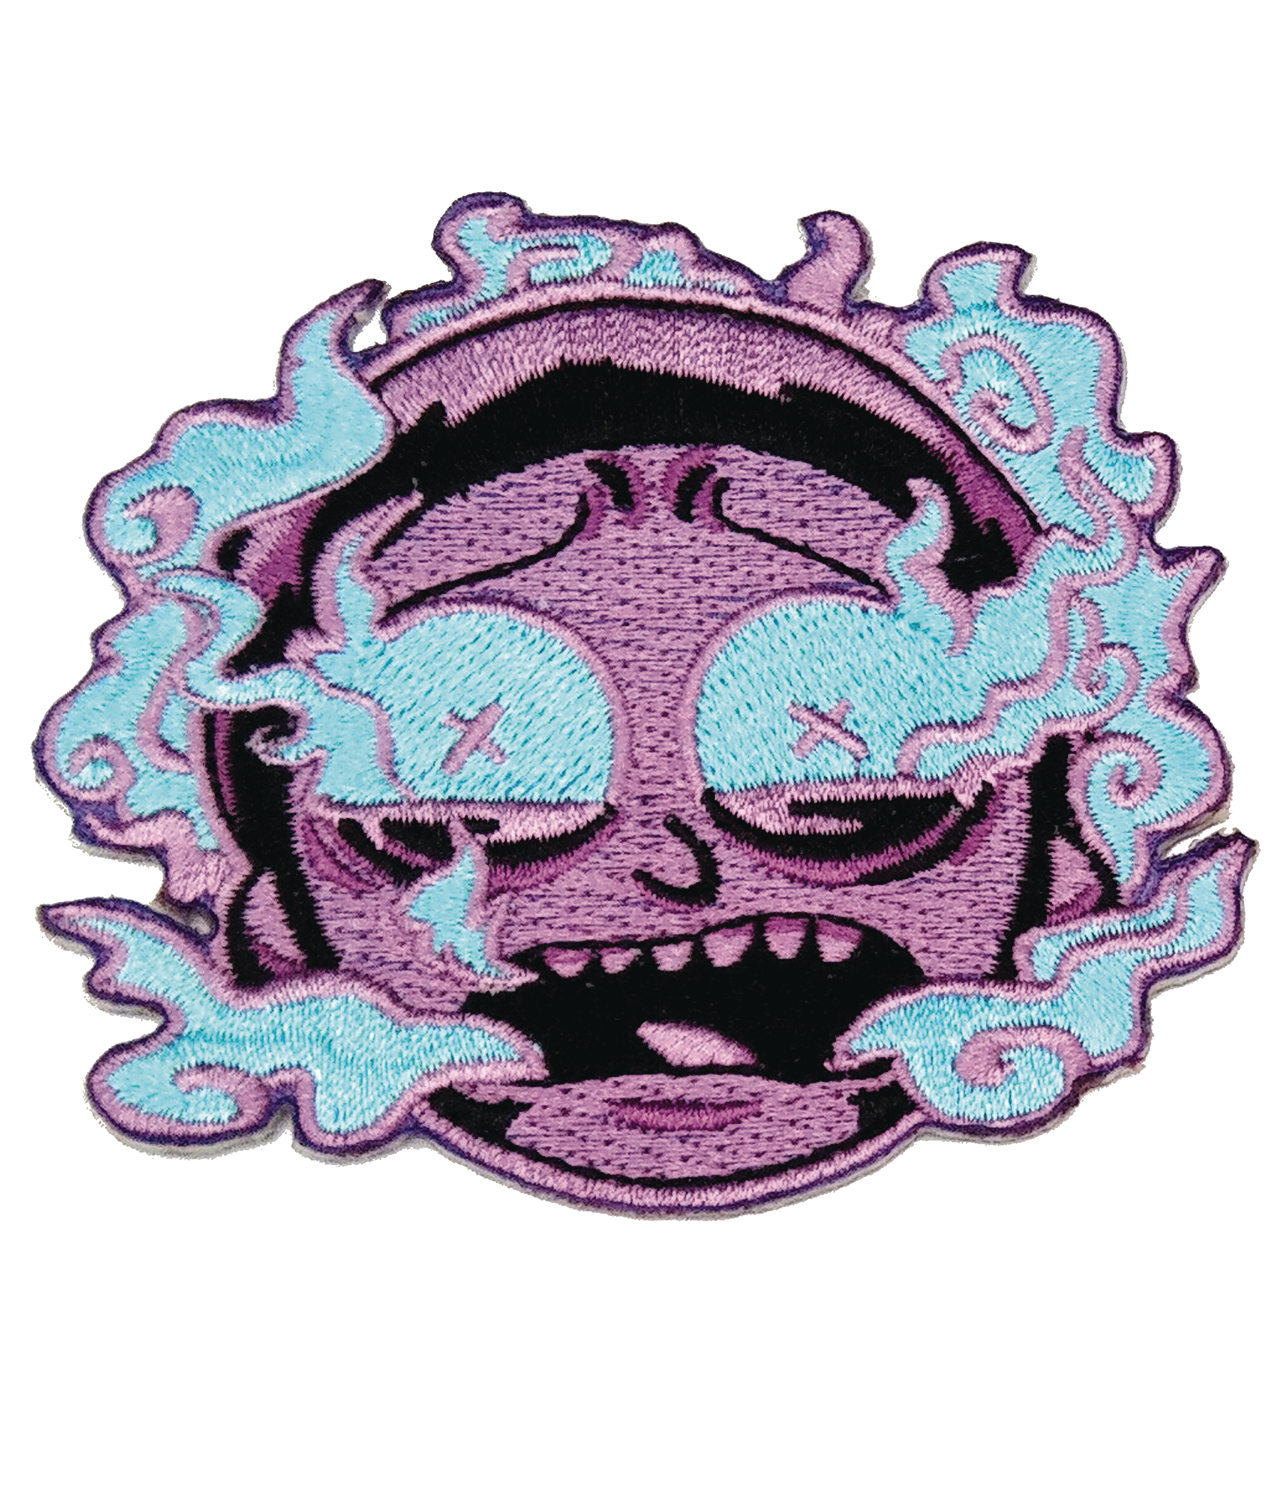 RICK AND MORTY PURPLE BURNT OUT MORTY PATCH